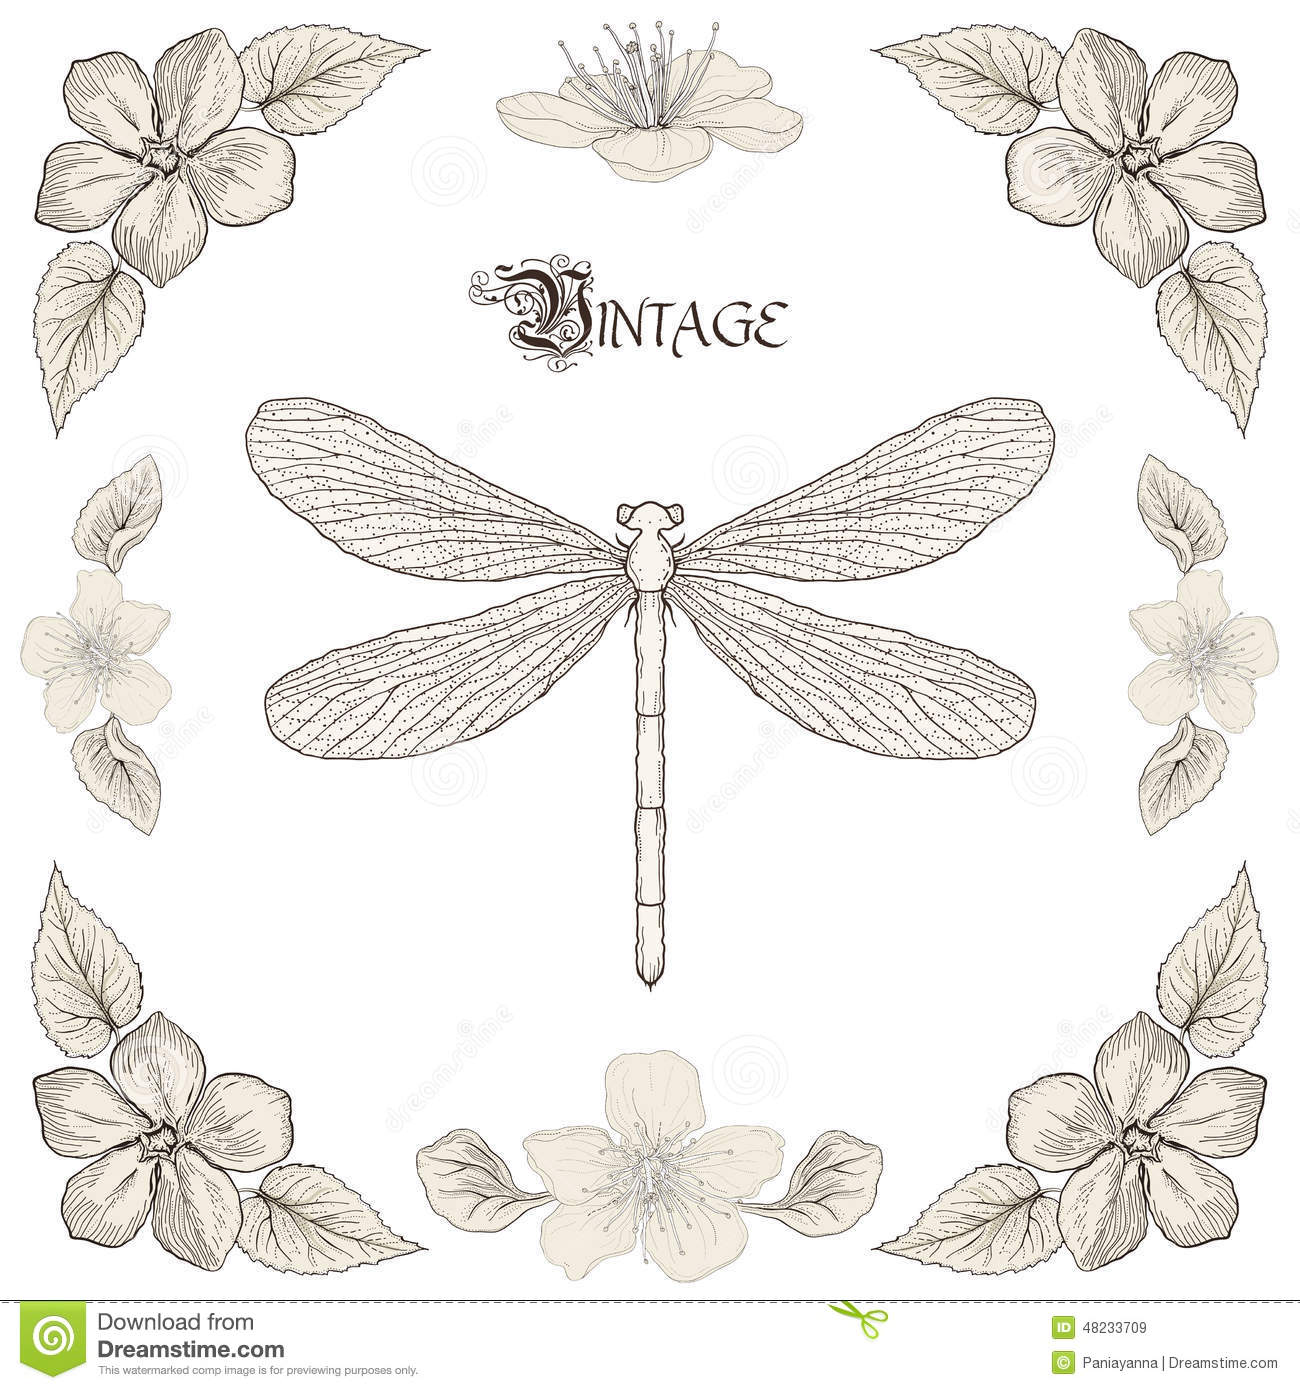 Dragonfly Drawing Vintage Engraving Style Stock Vector ...